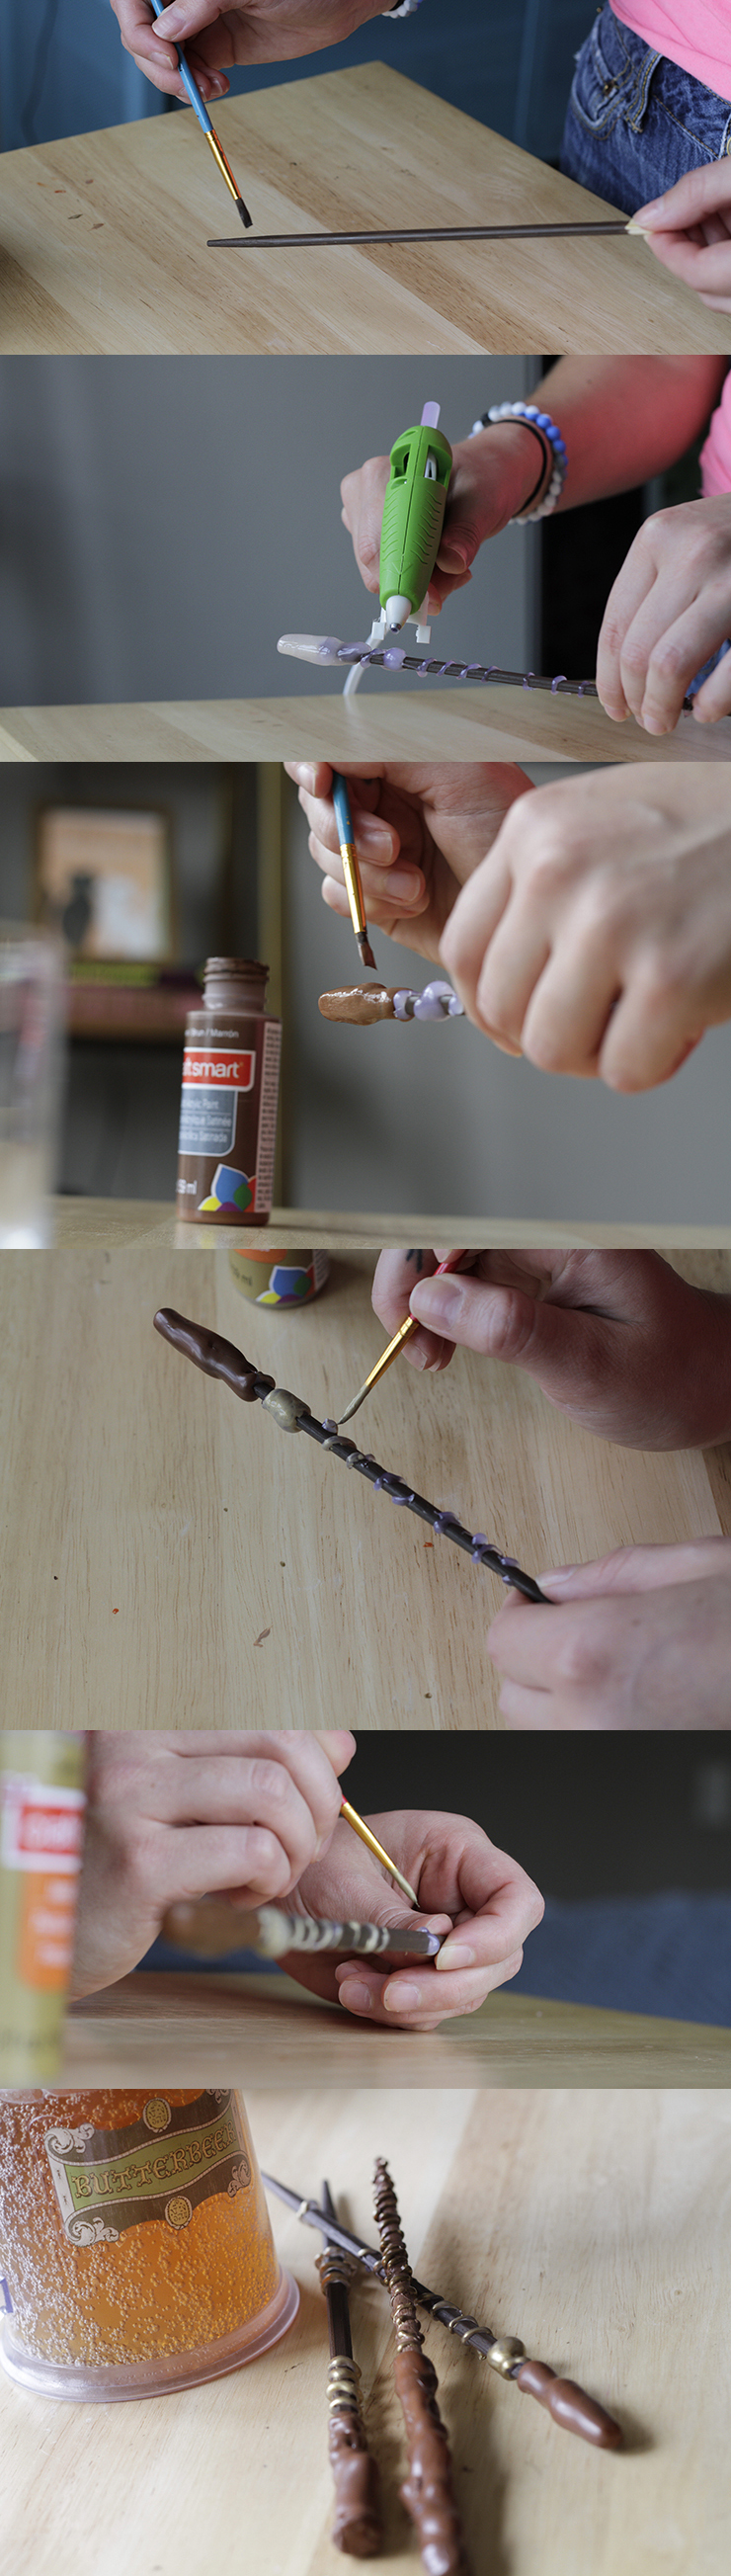 This simple tutorial will help you make a DIY Harry Potter wand. Perfect for a Harry Potter party or gift. So easy, it will feel like magic!